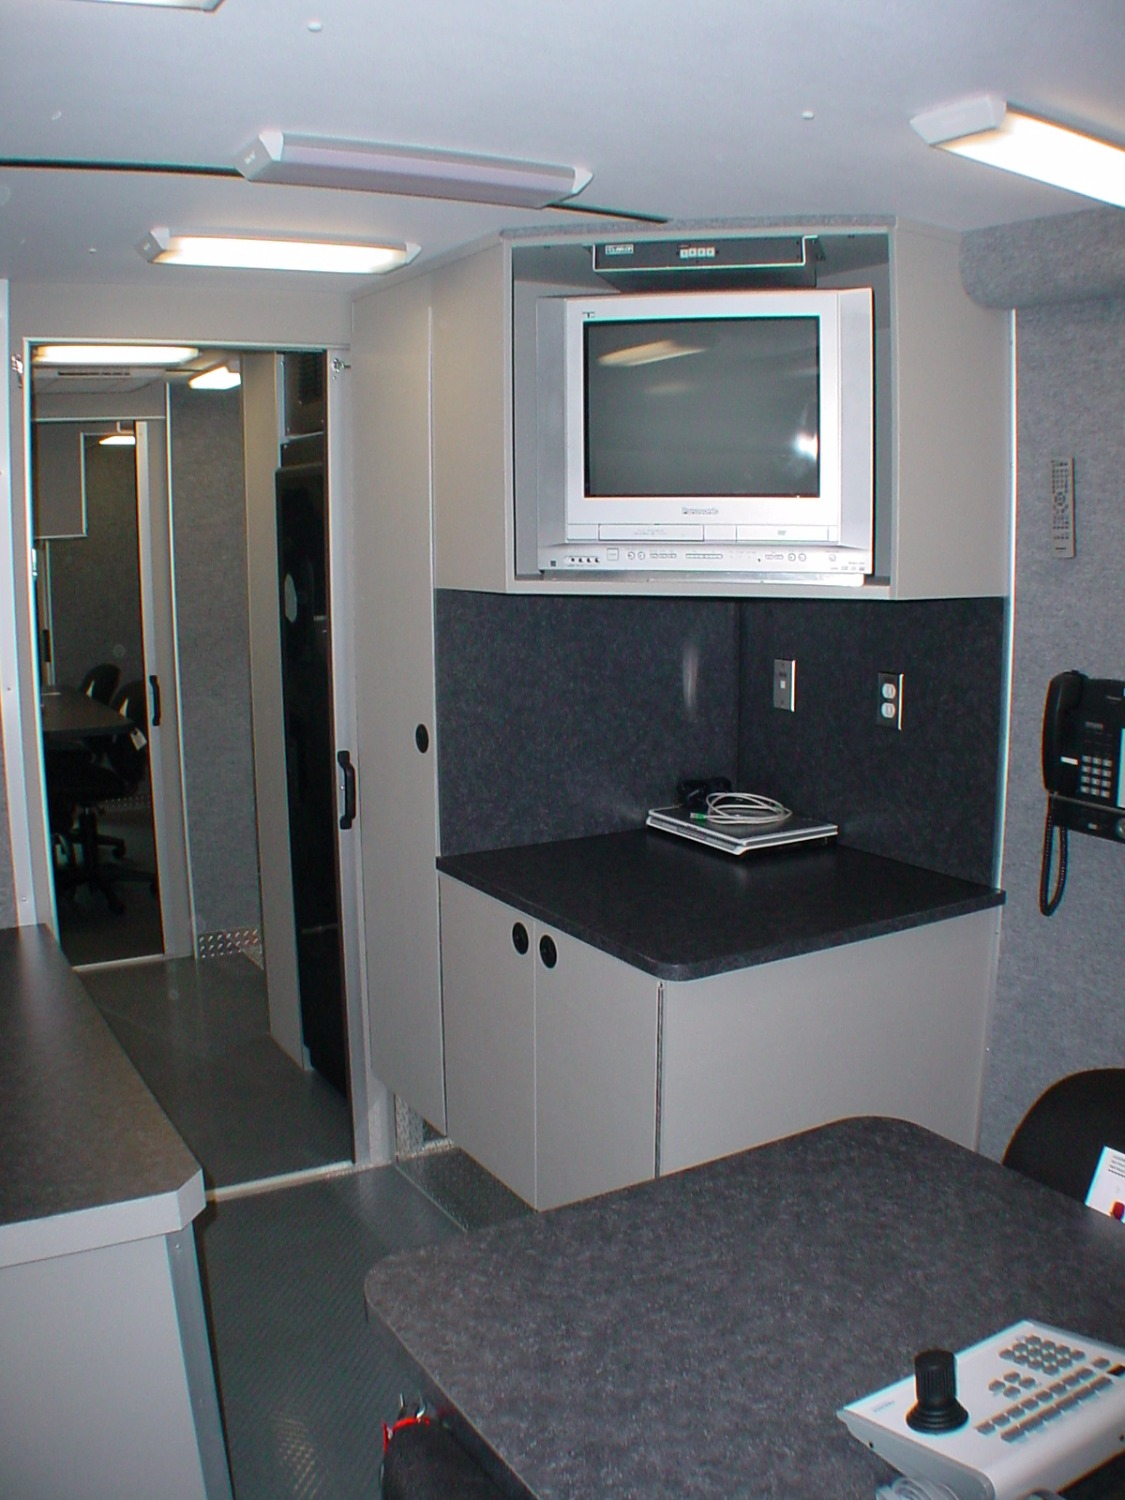 28-Ft. Stepvan Command Unit